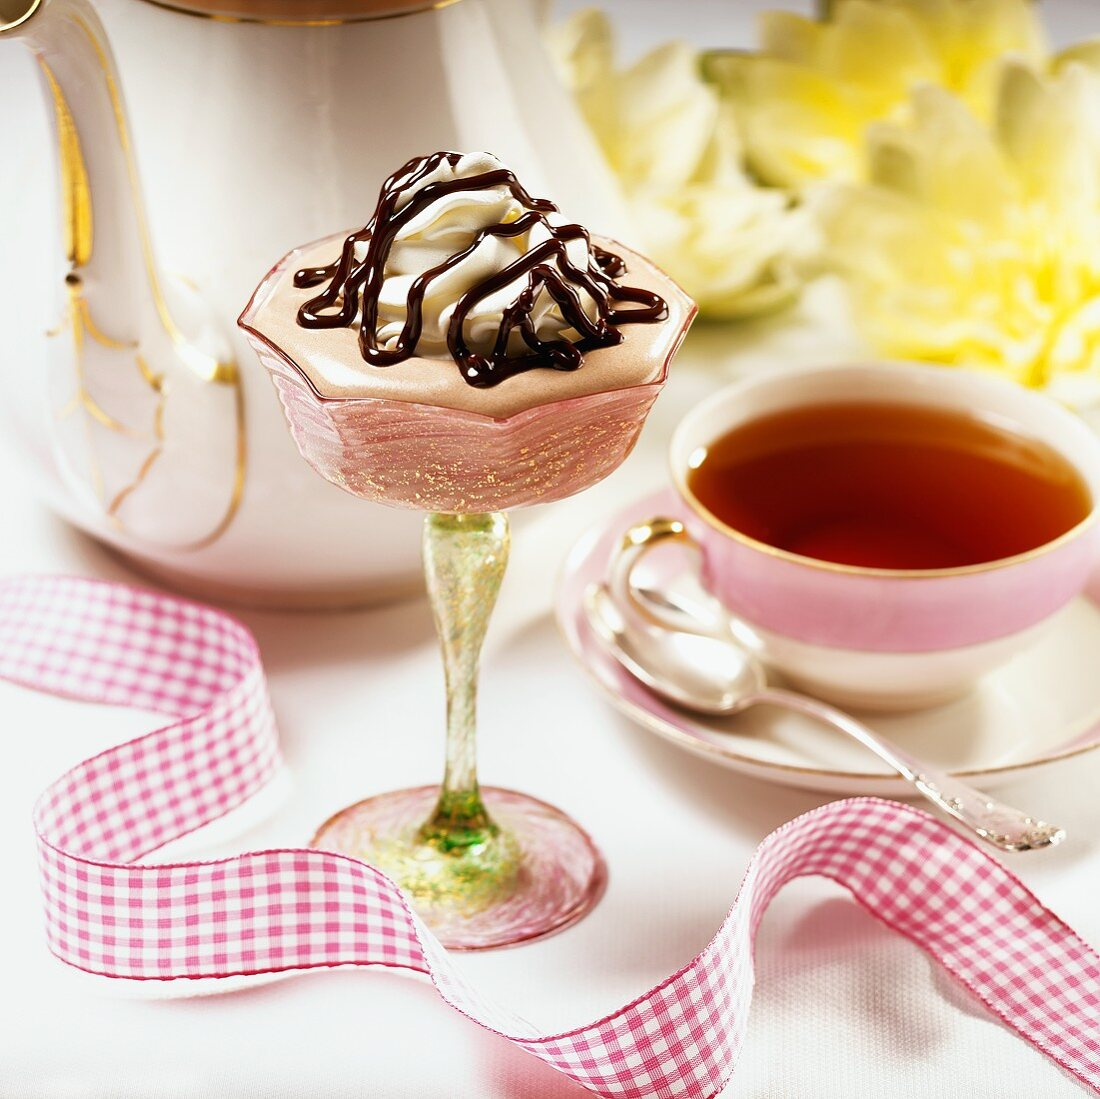 Chocolate Fudge Mousse in a Stem Glass with a Cup of Tea